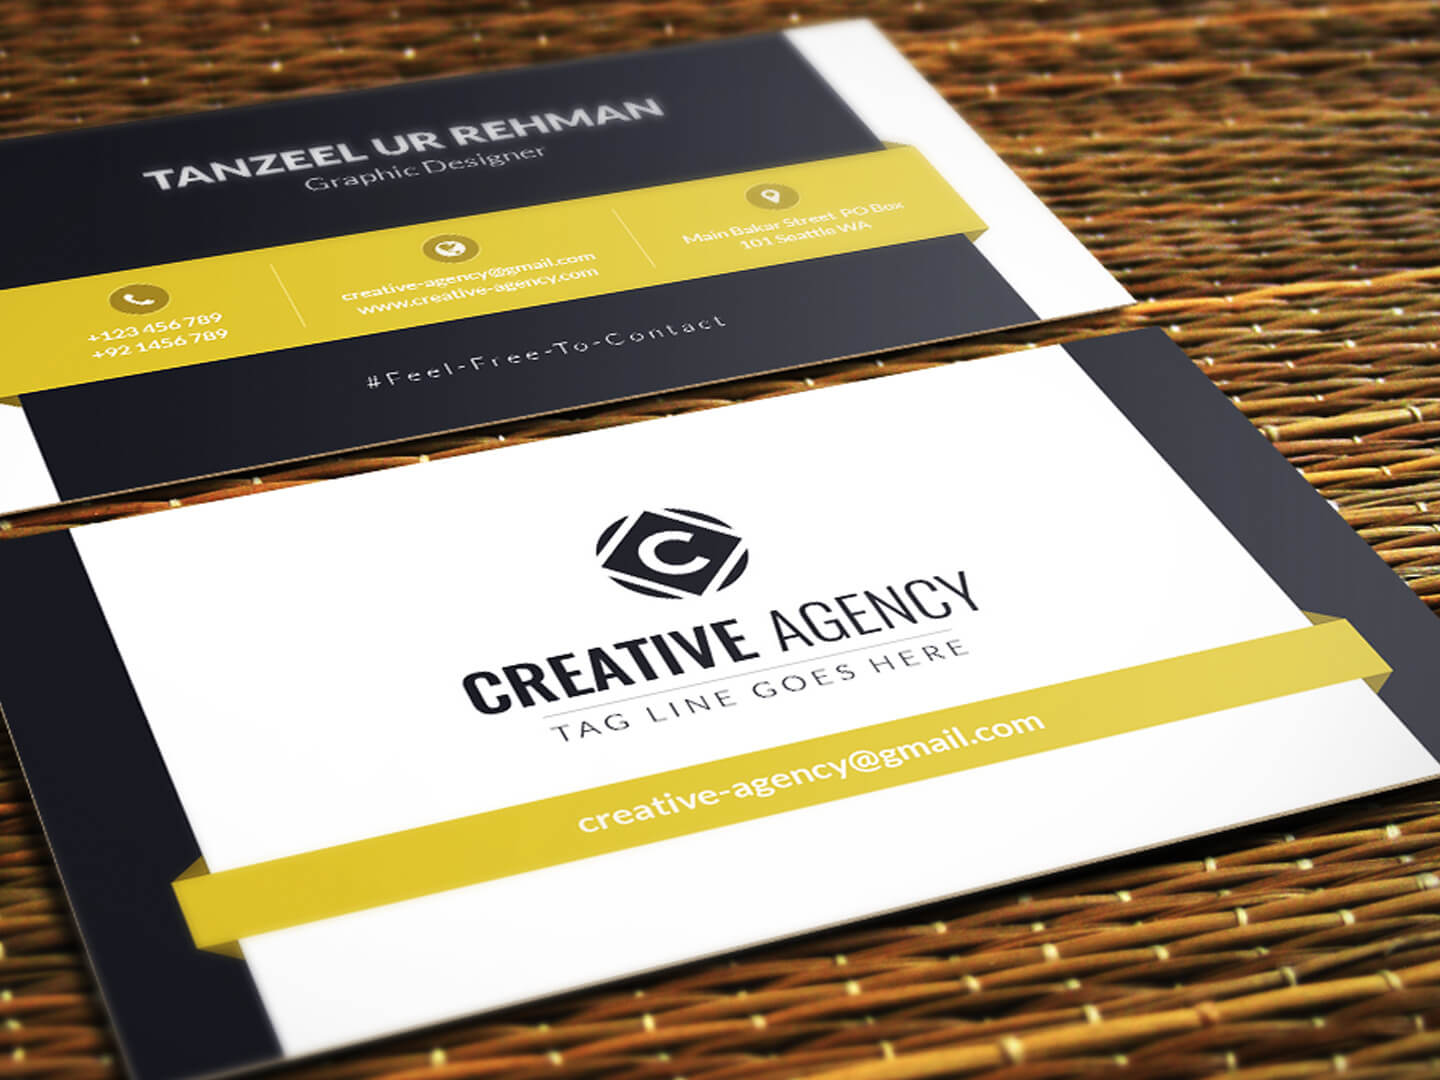 Business Cards Template - Free Downloadtanzeel Ur Rehman inside Templates For Visiting Cards Free Downloads